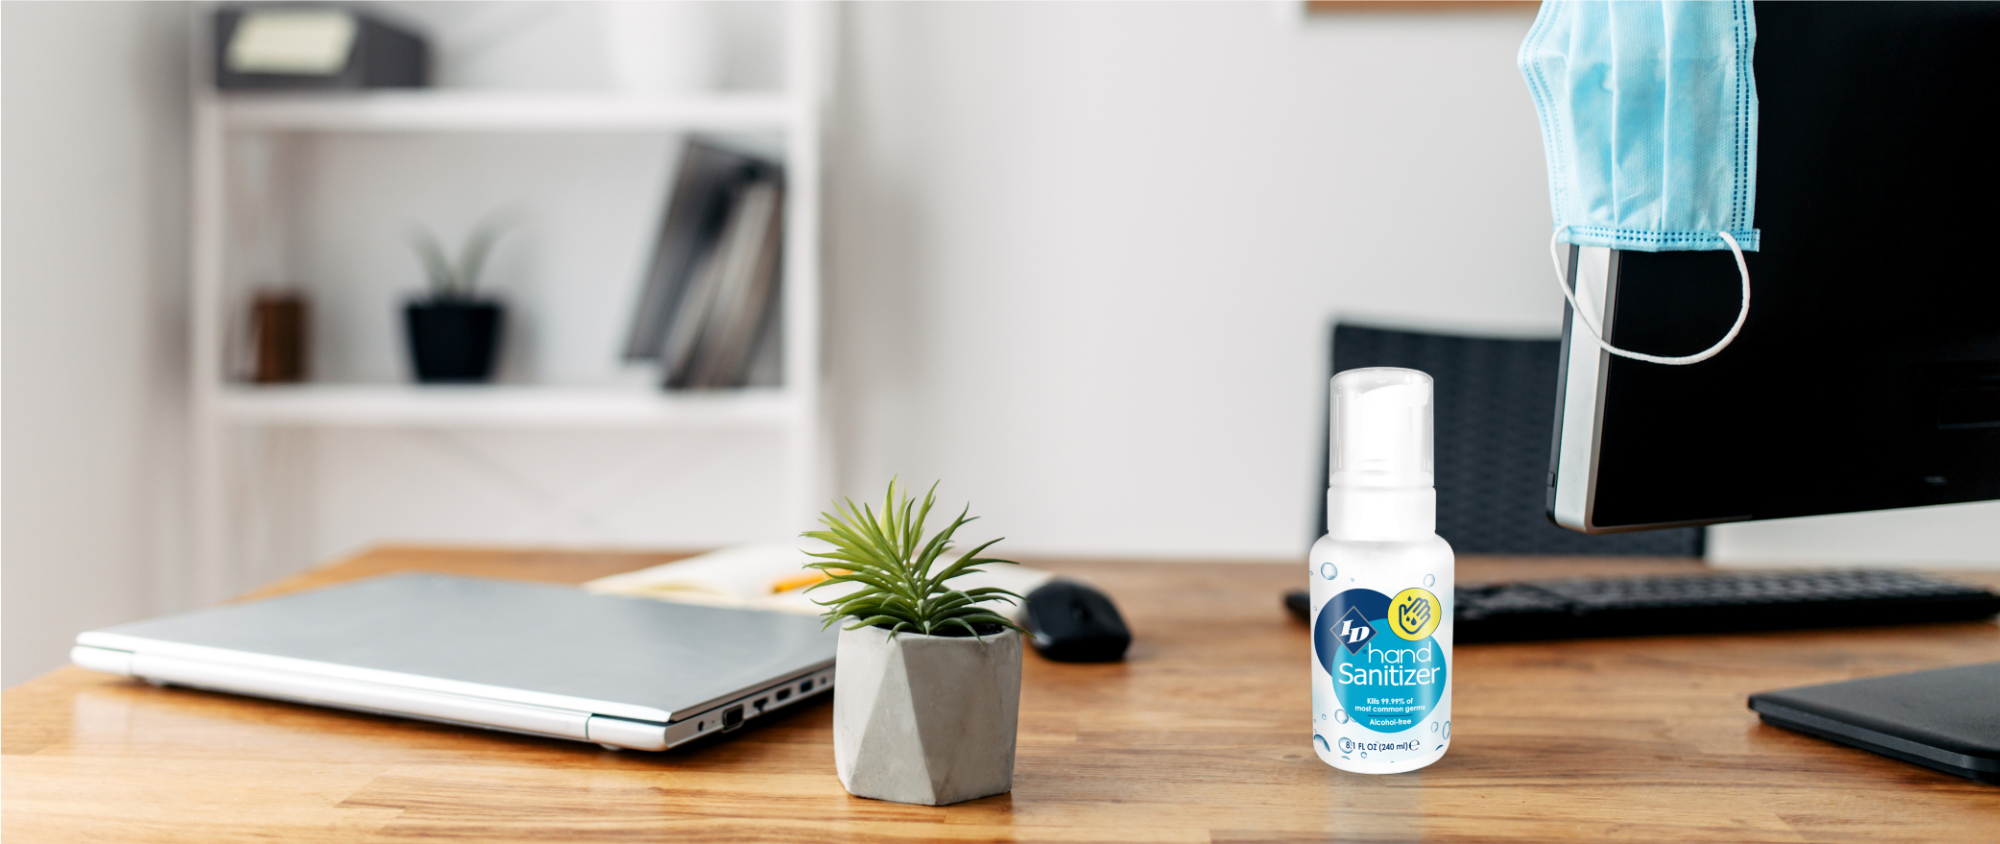 hand sanitizer for business, work, alcohol free